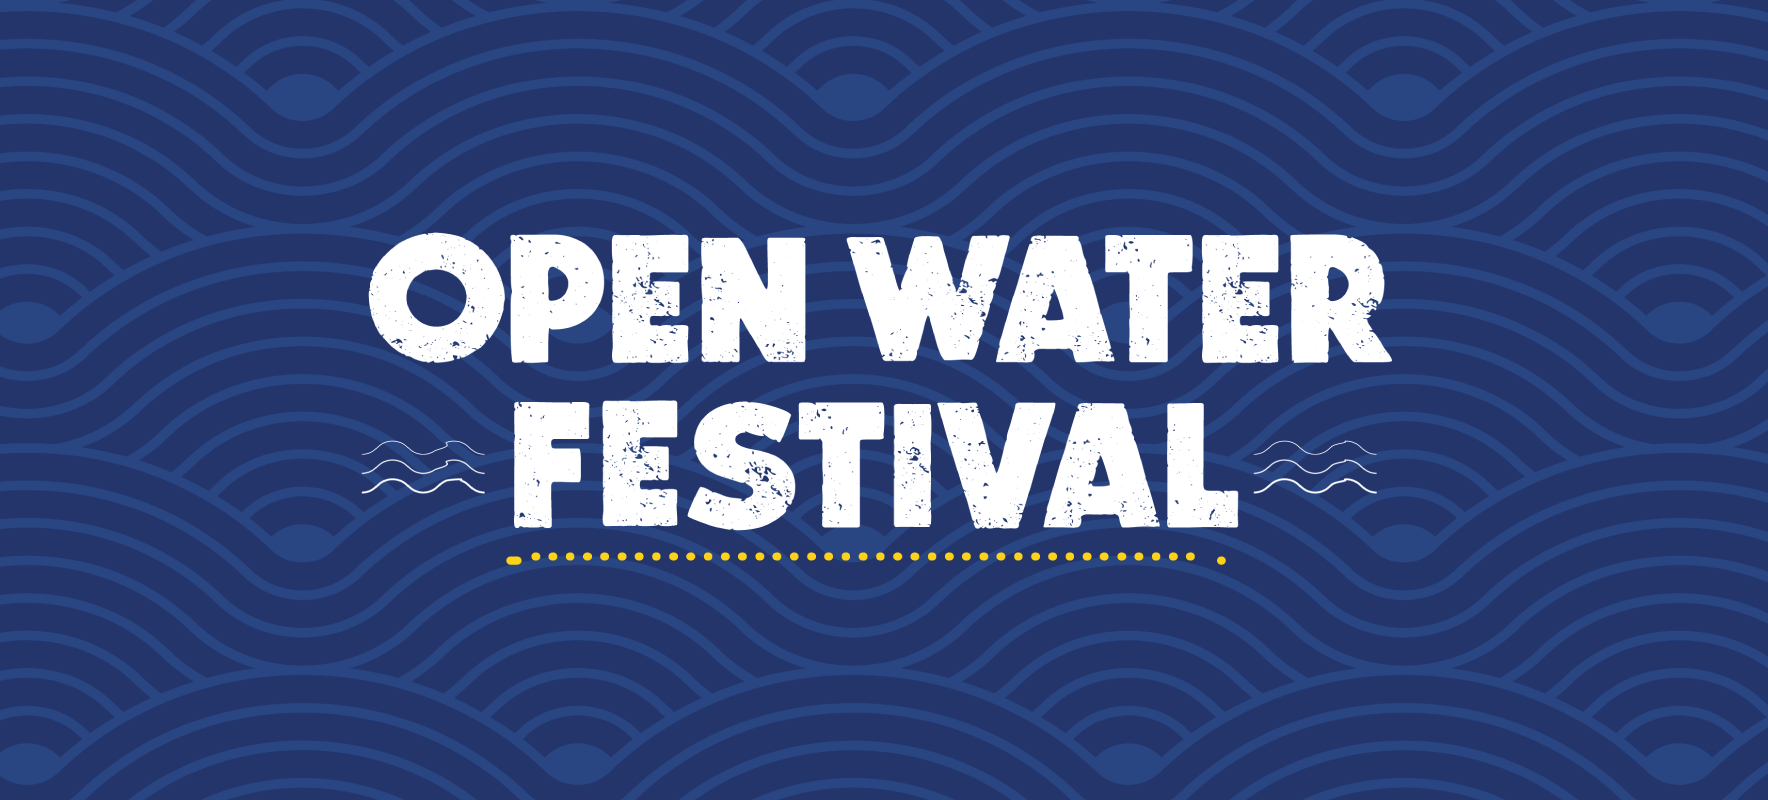 Swimmers set to take part in Open Water Festival in aid of drowning prevention